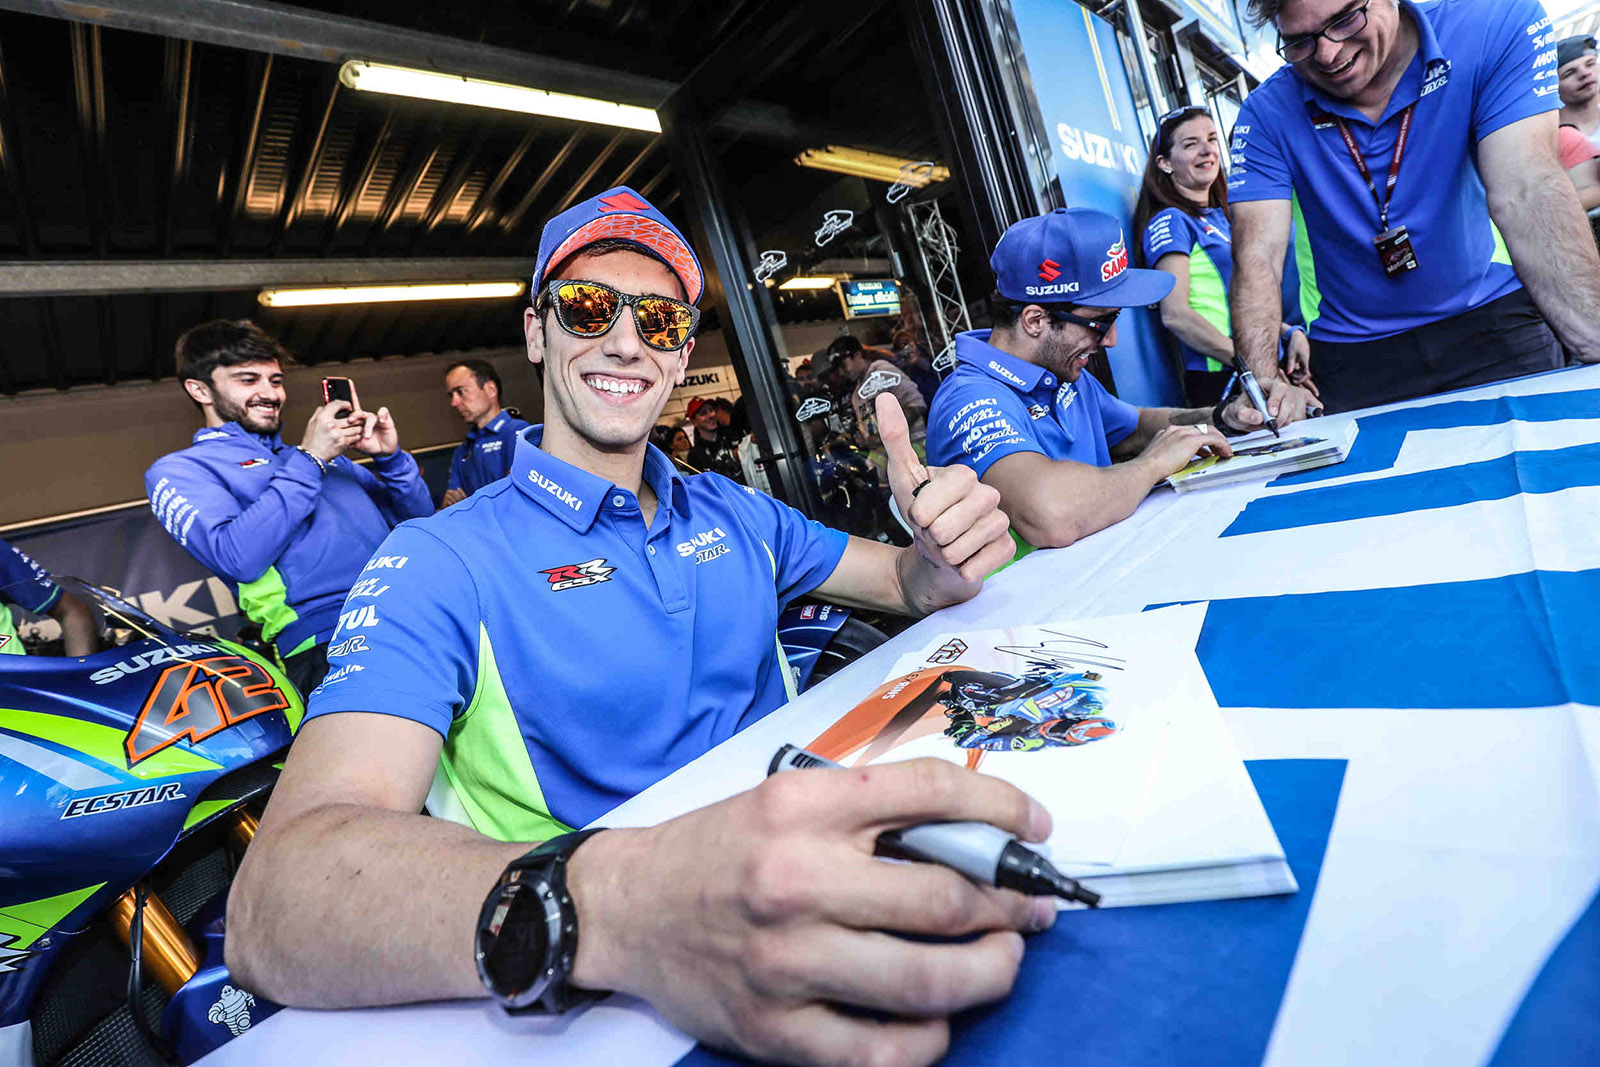 MEET THE RIDERS IN MISANO THANKS TO 2 WHEELS FOR LIFE